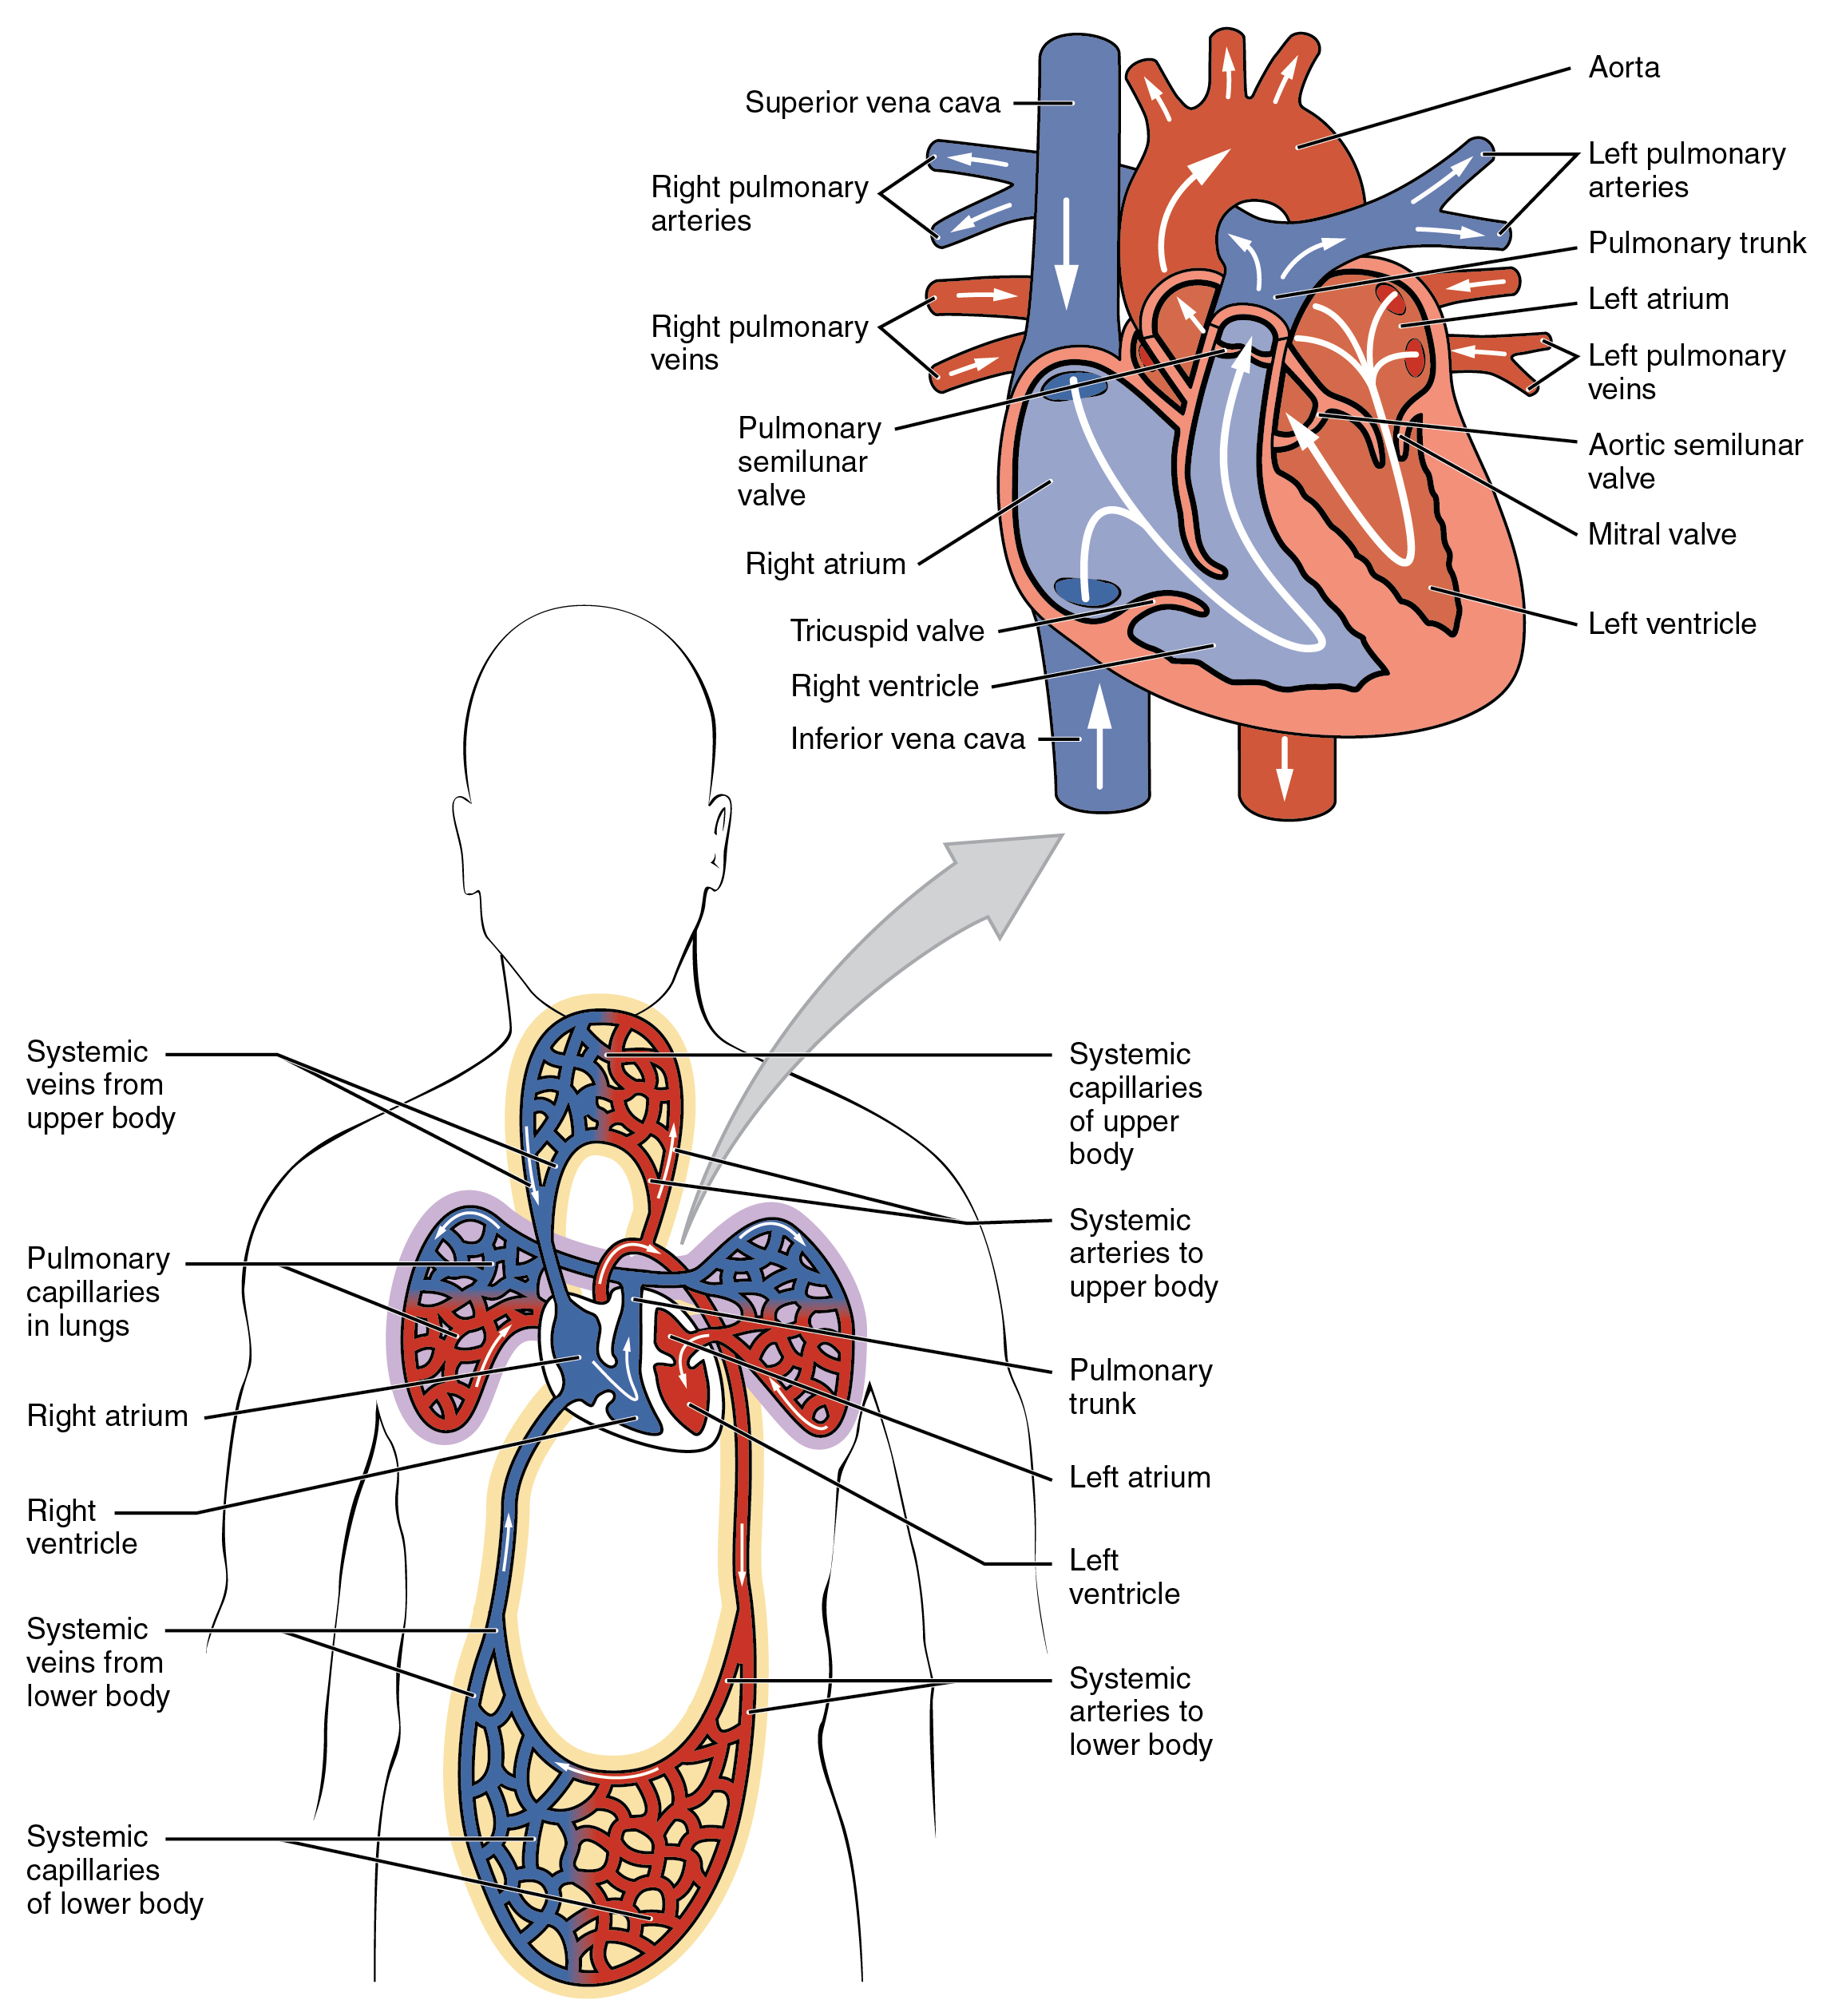 Heart anatomy anatomy and physiology the top panel shows the human heart with the arteries and veins labeled the bottom pooptronica